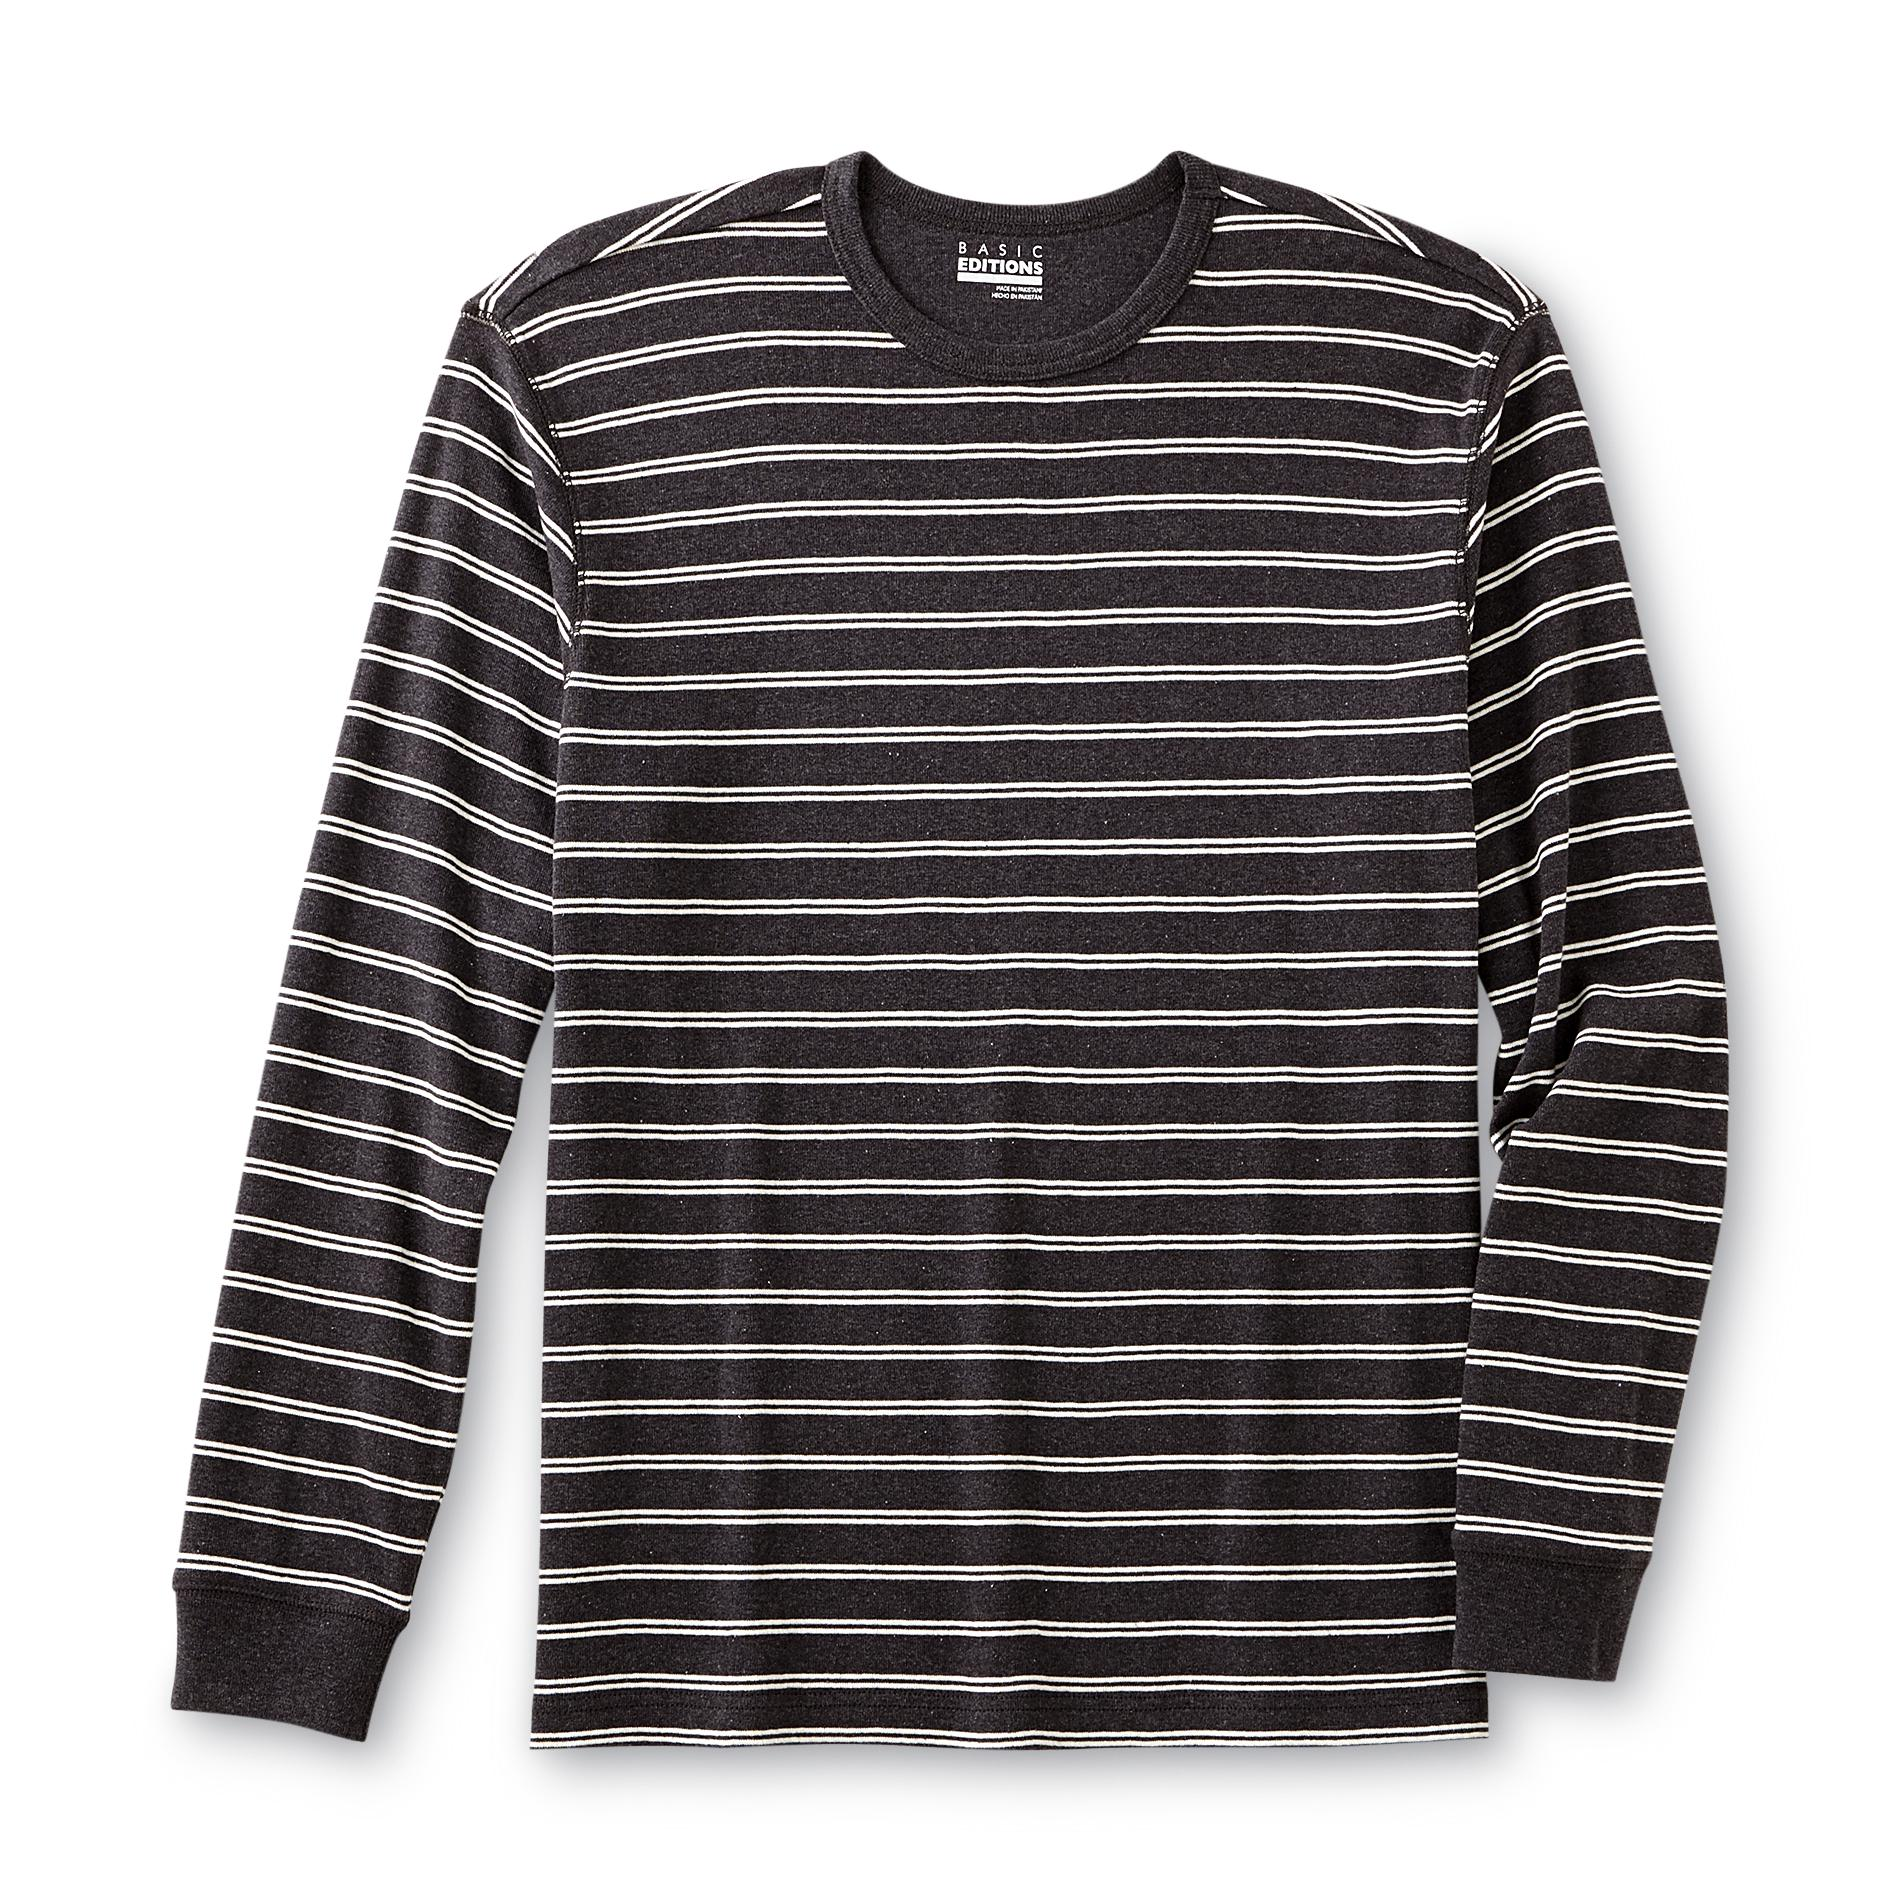 Men's Long-Sleeve T-Shirt - Striped